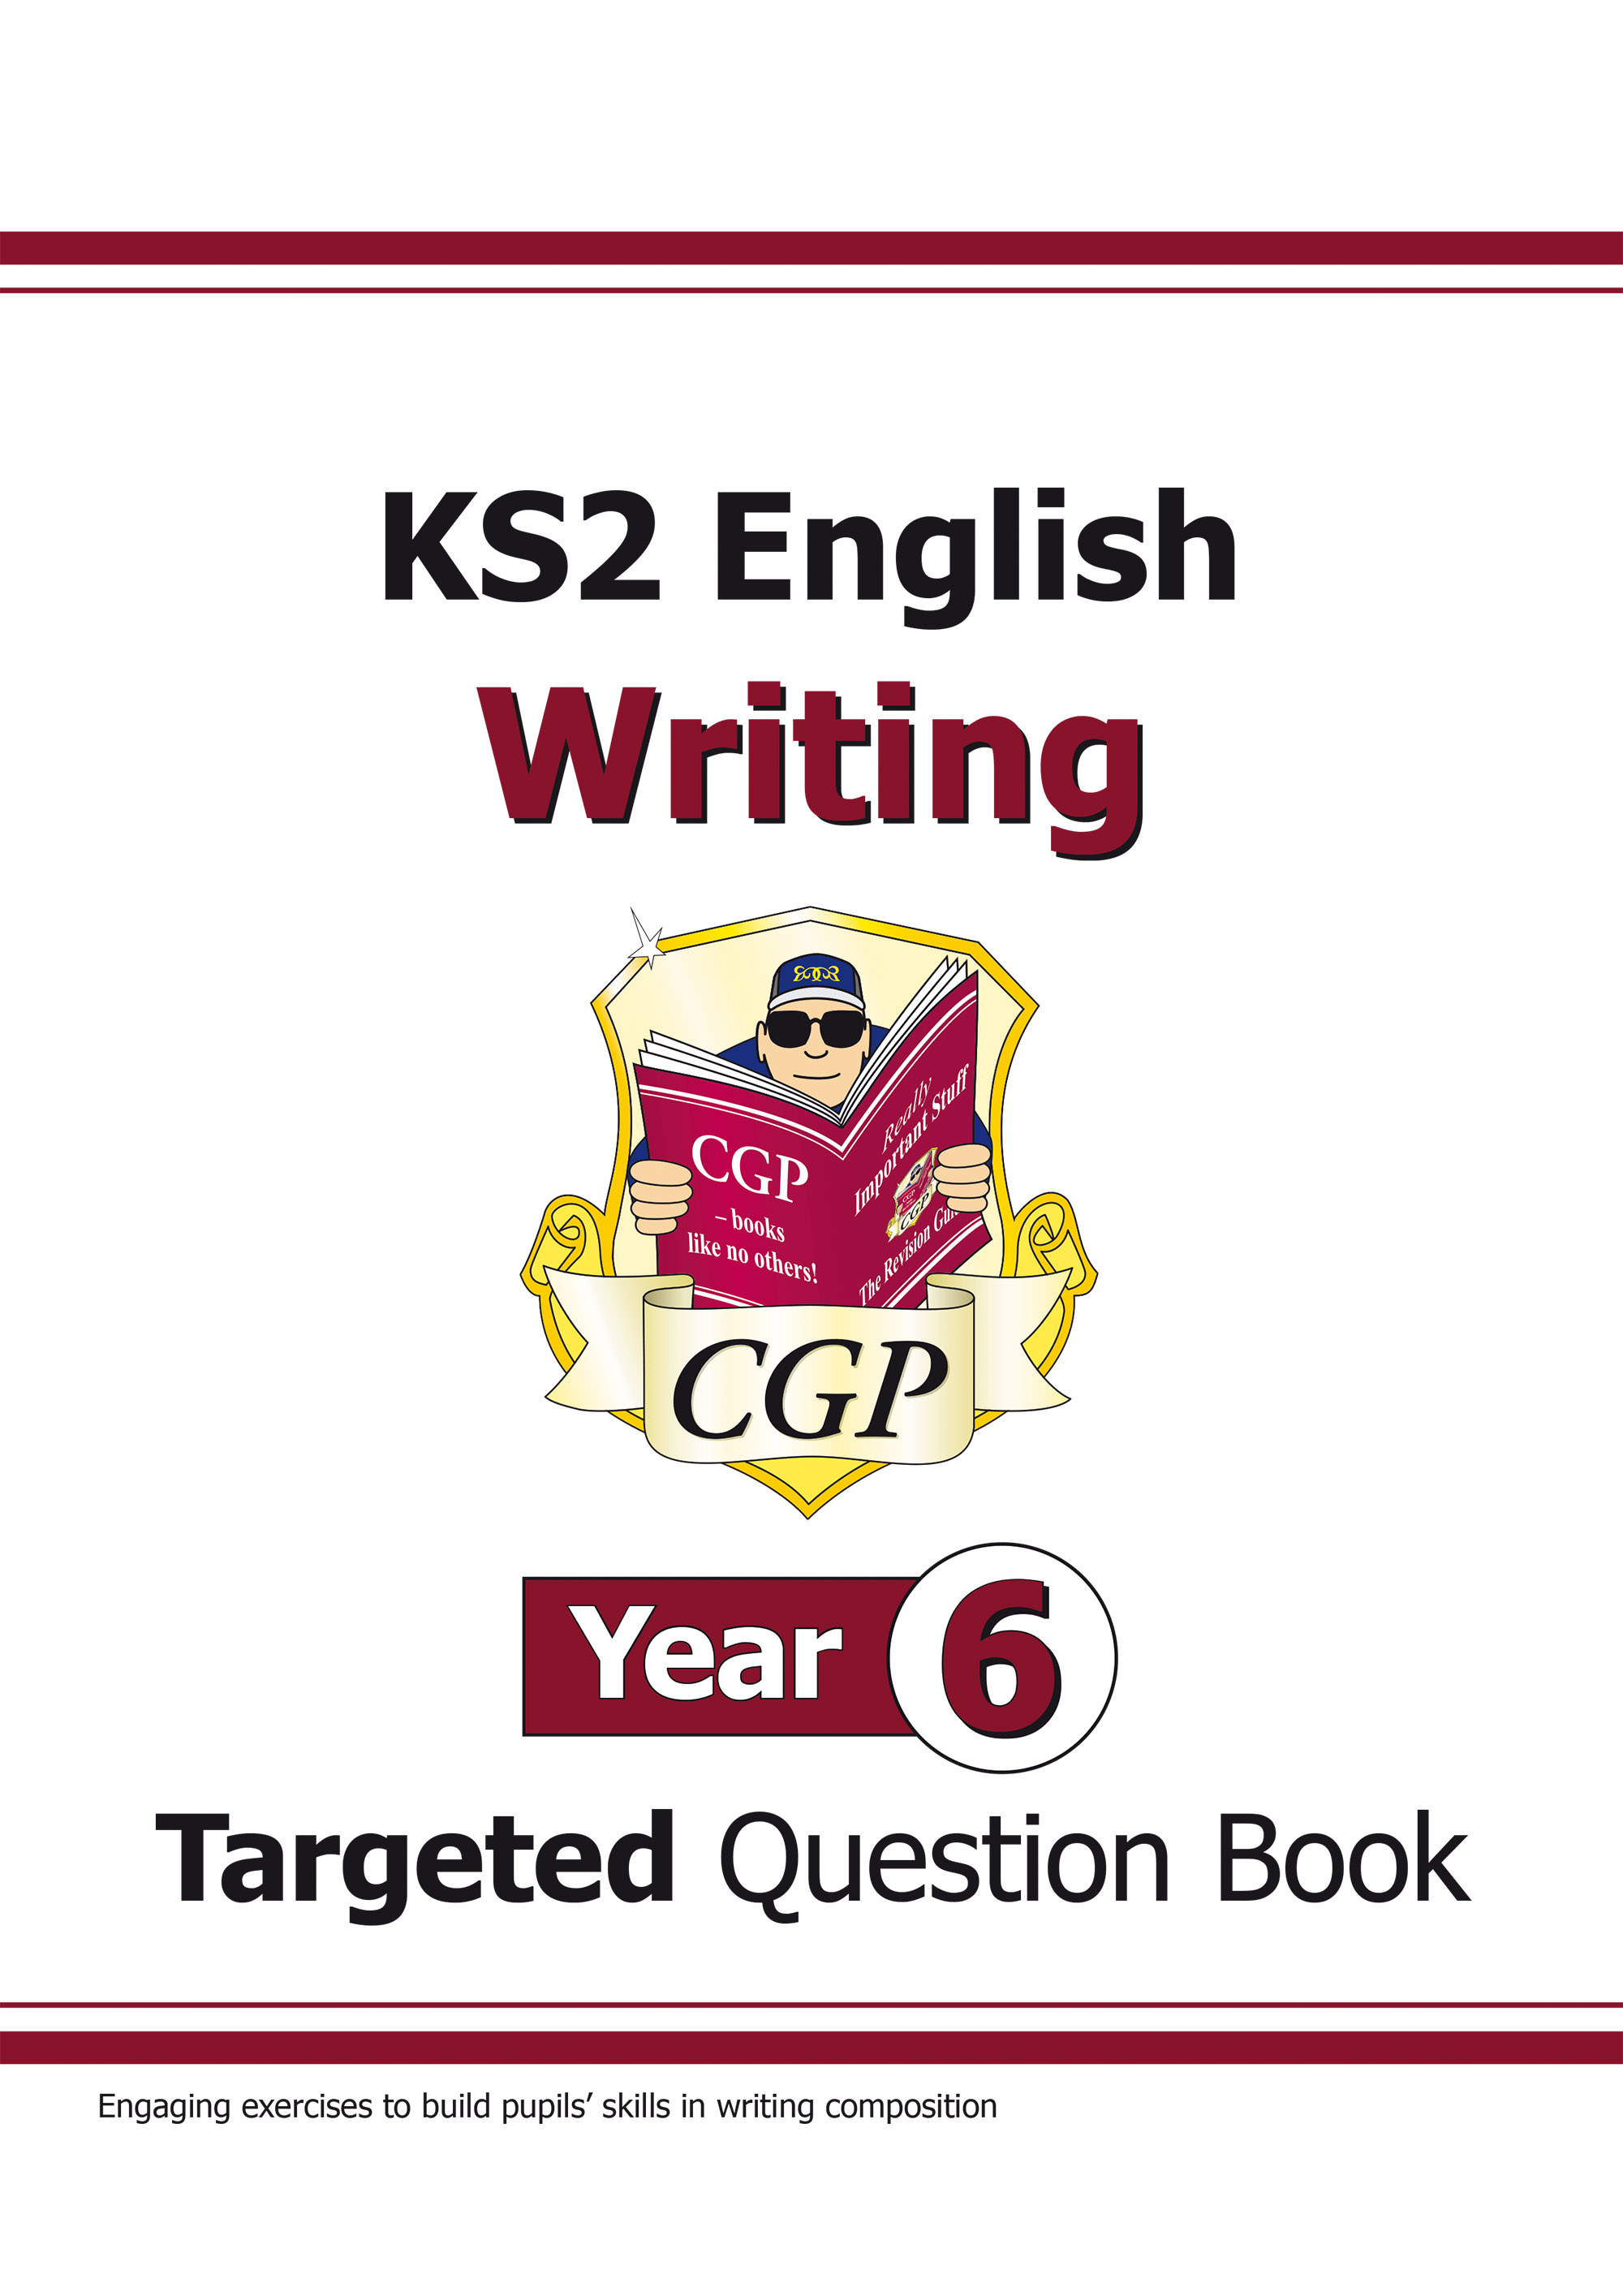 E6WW21DK - KS2 English Writing Targeted Question Book - Year 6